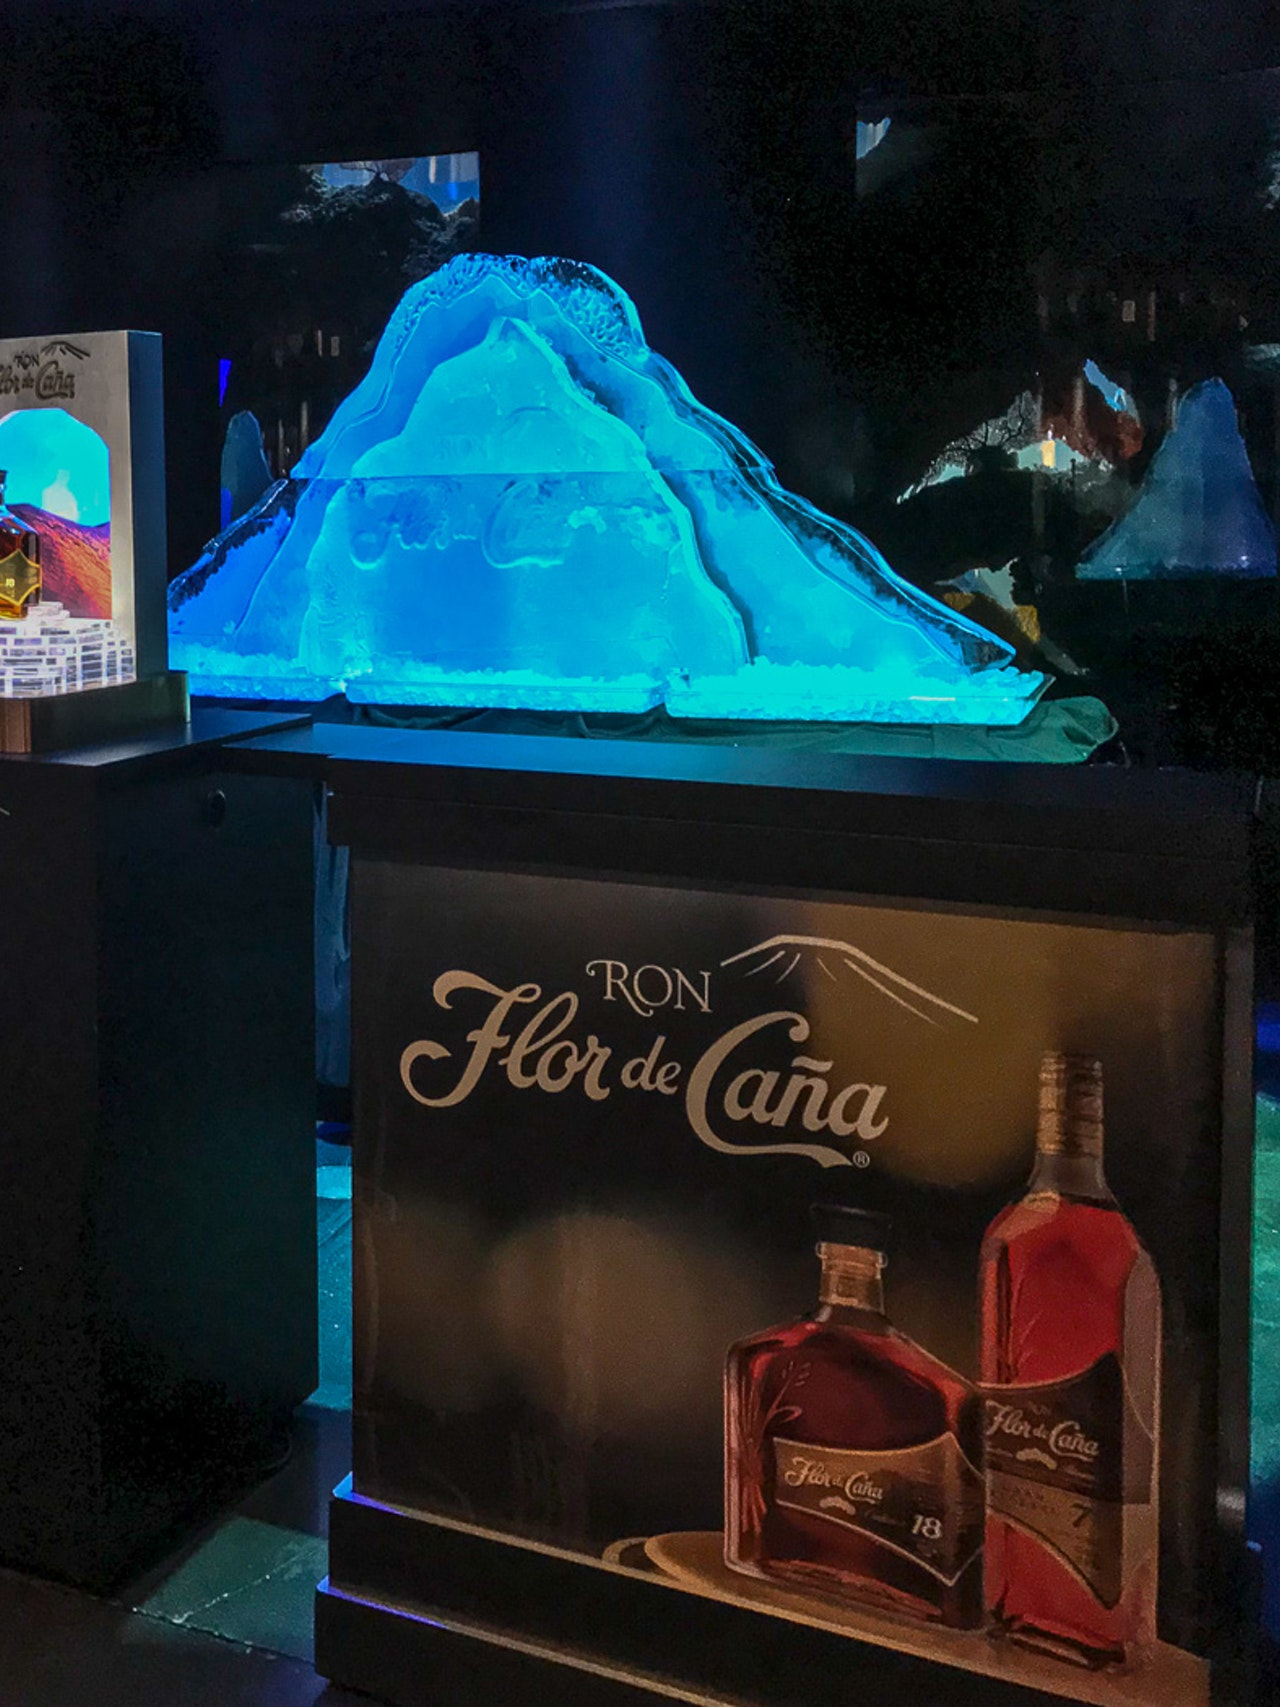 FLOR DE CAÑA IGFA'S HALL OF FAME